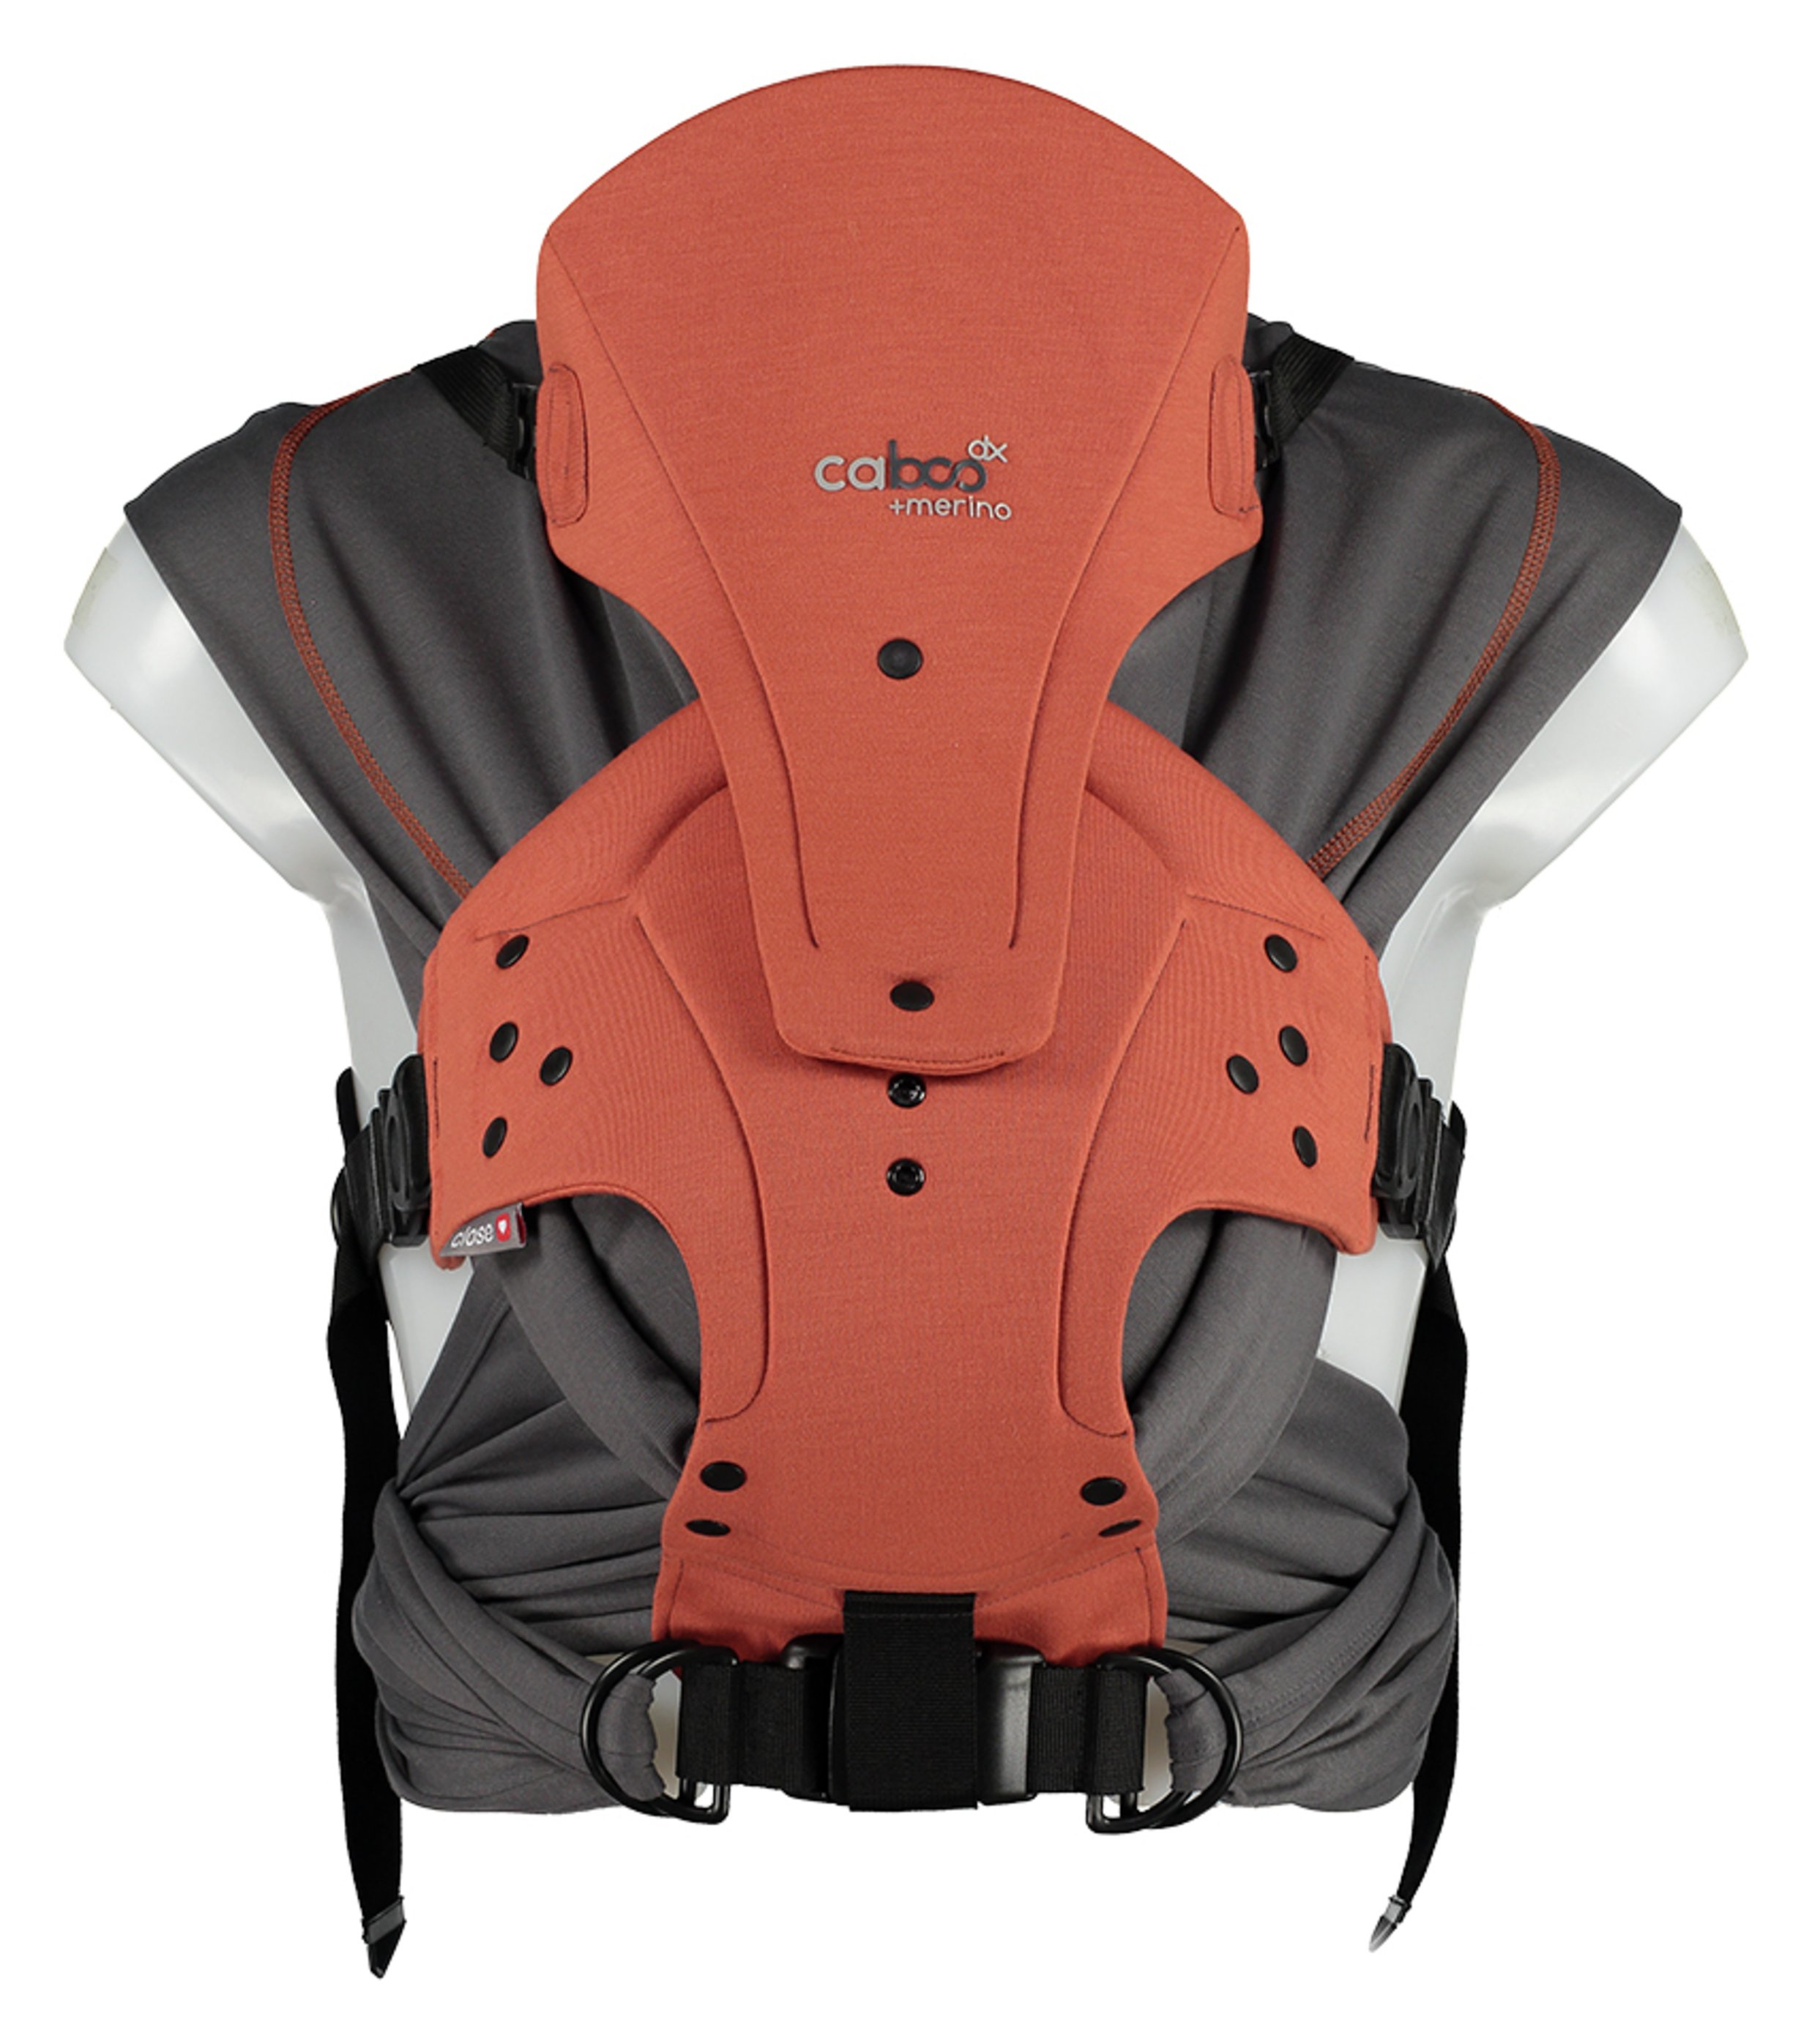 Image of Caboo DXGO Baby Carrier - Merino